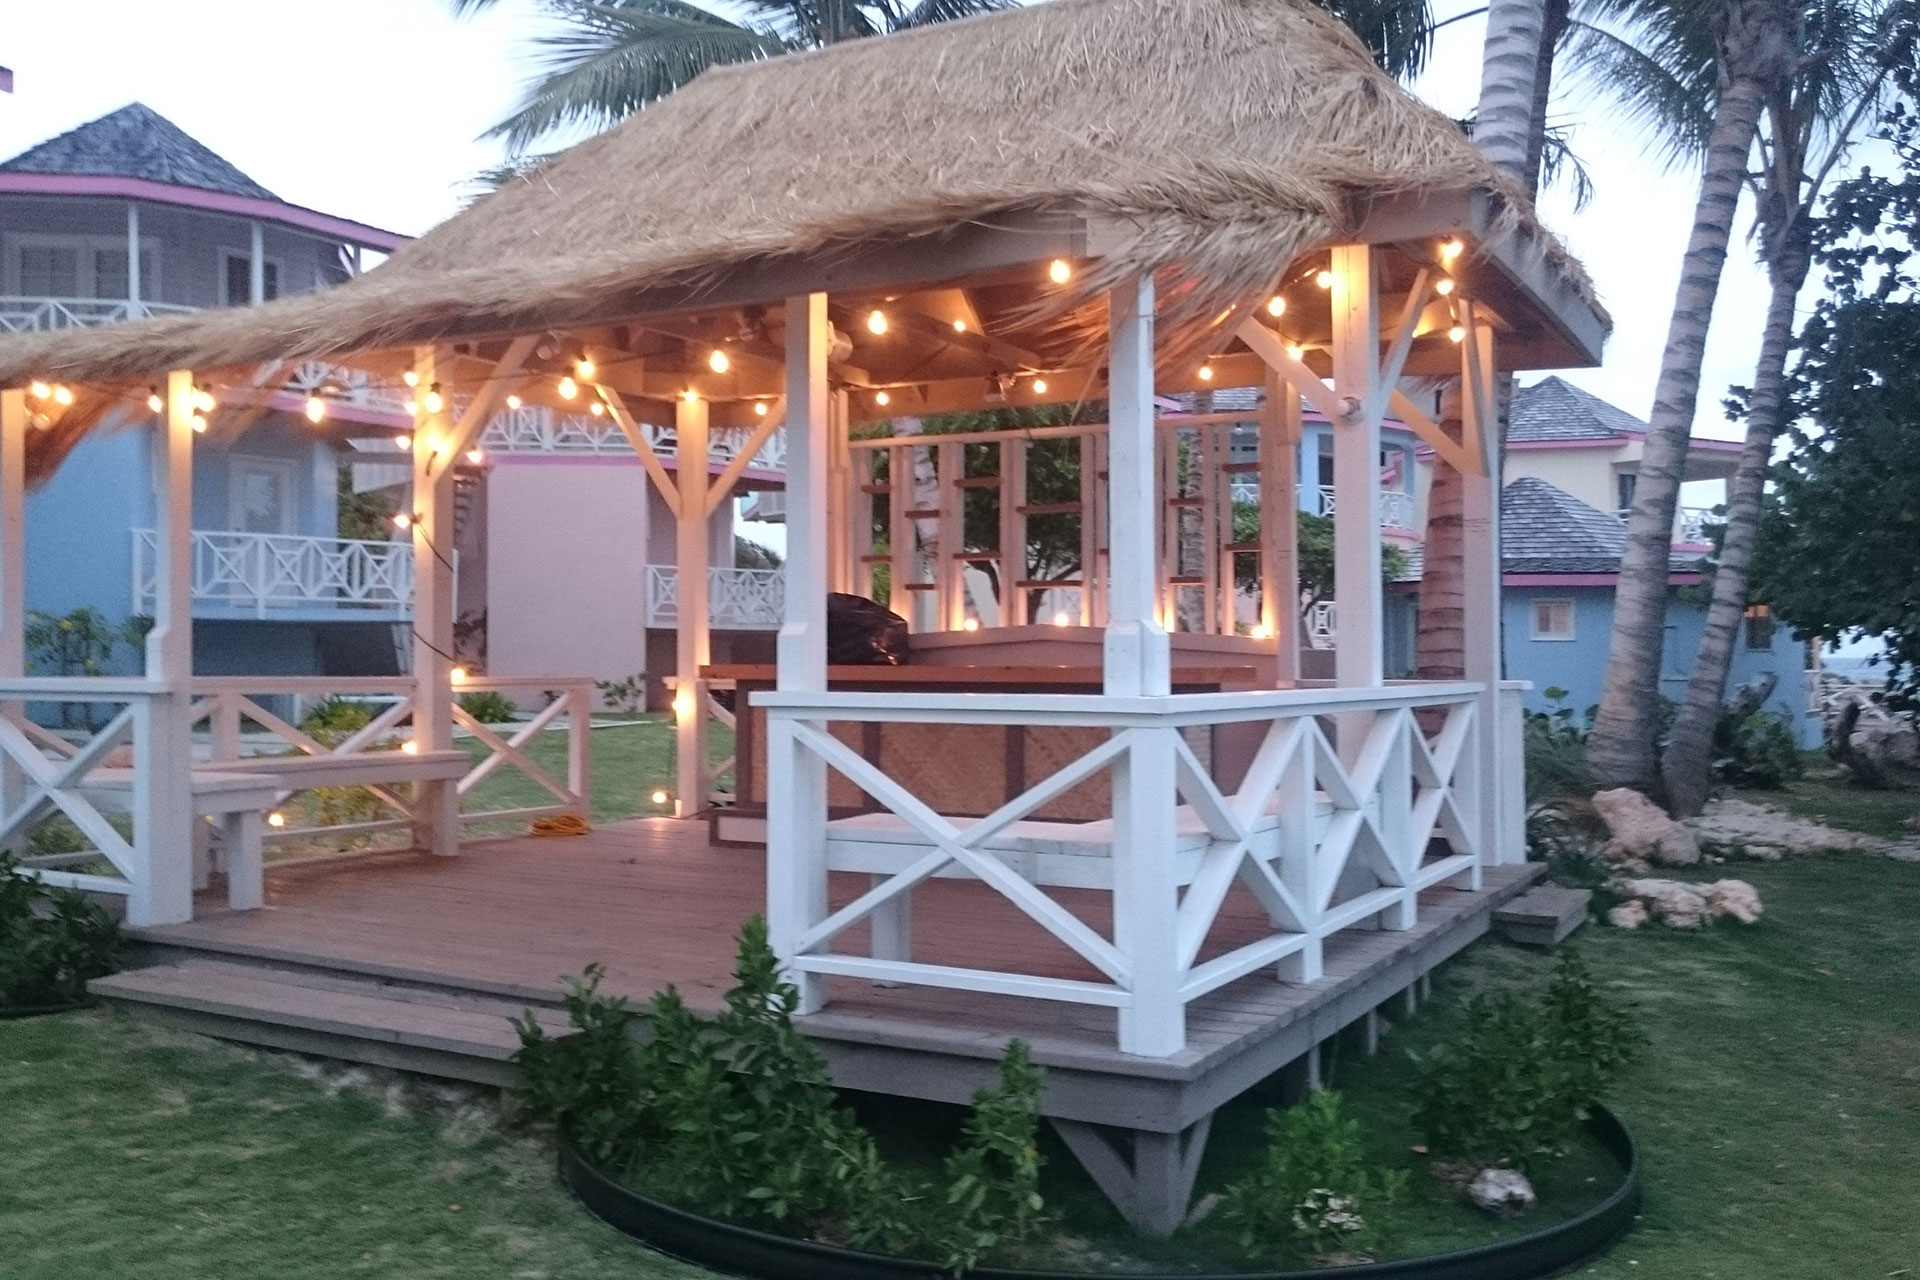 Arawak Beach Inn; Courtesy of Arawak Beach Inn